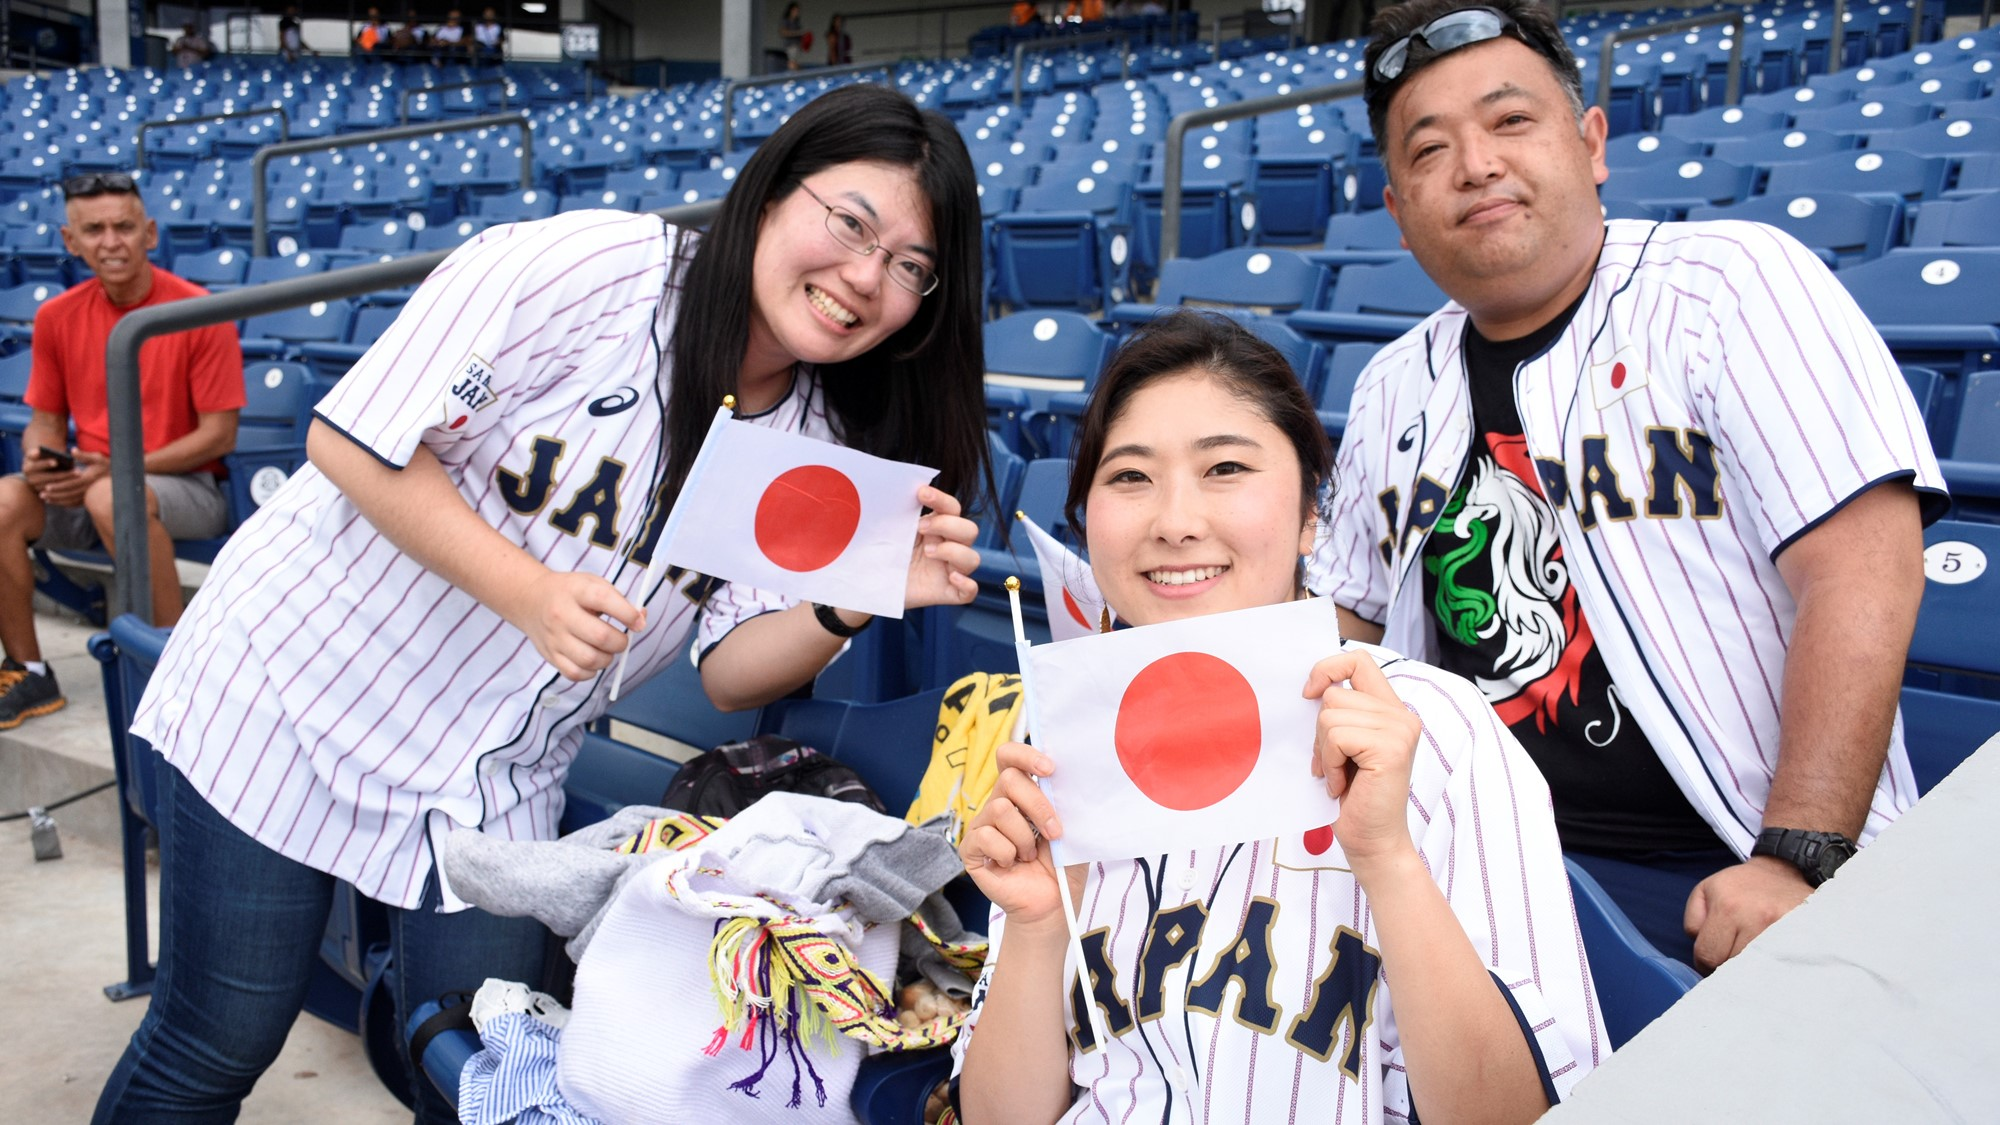 A family of Japanese fans